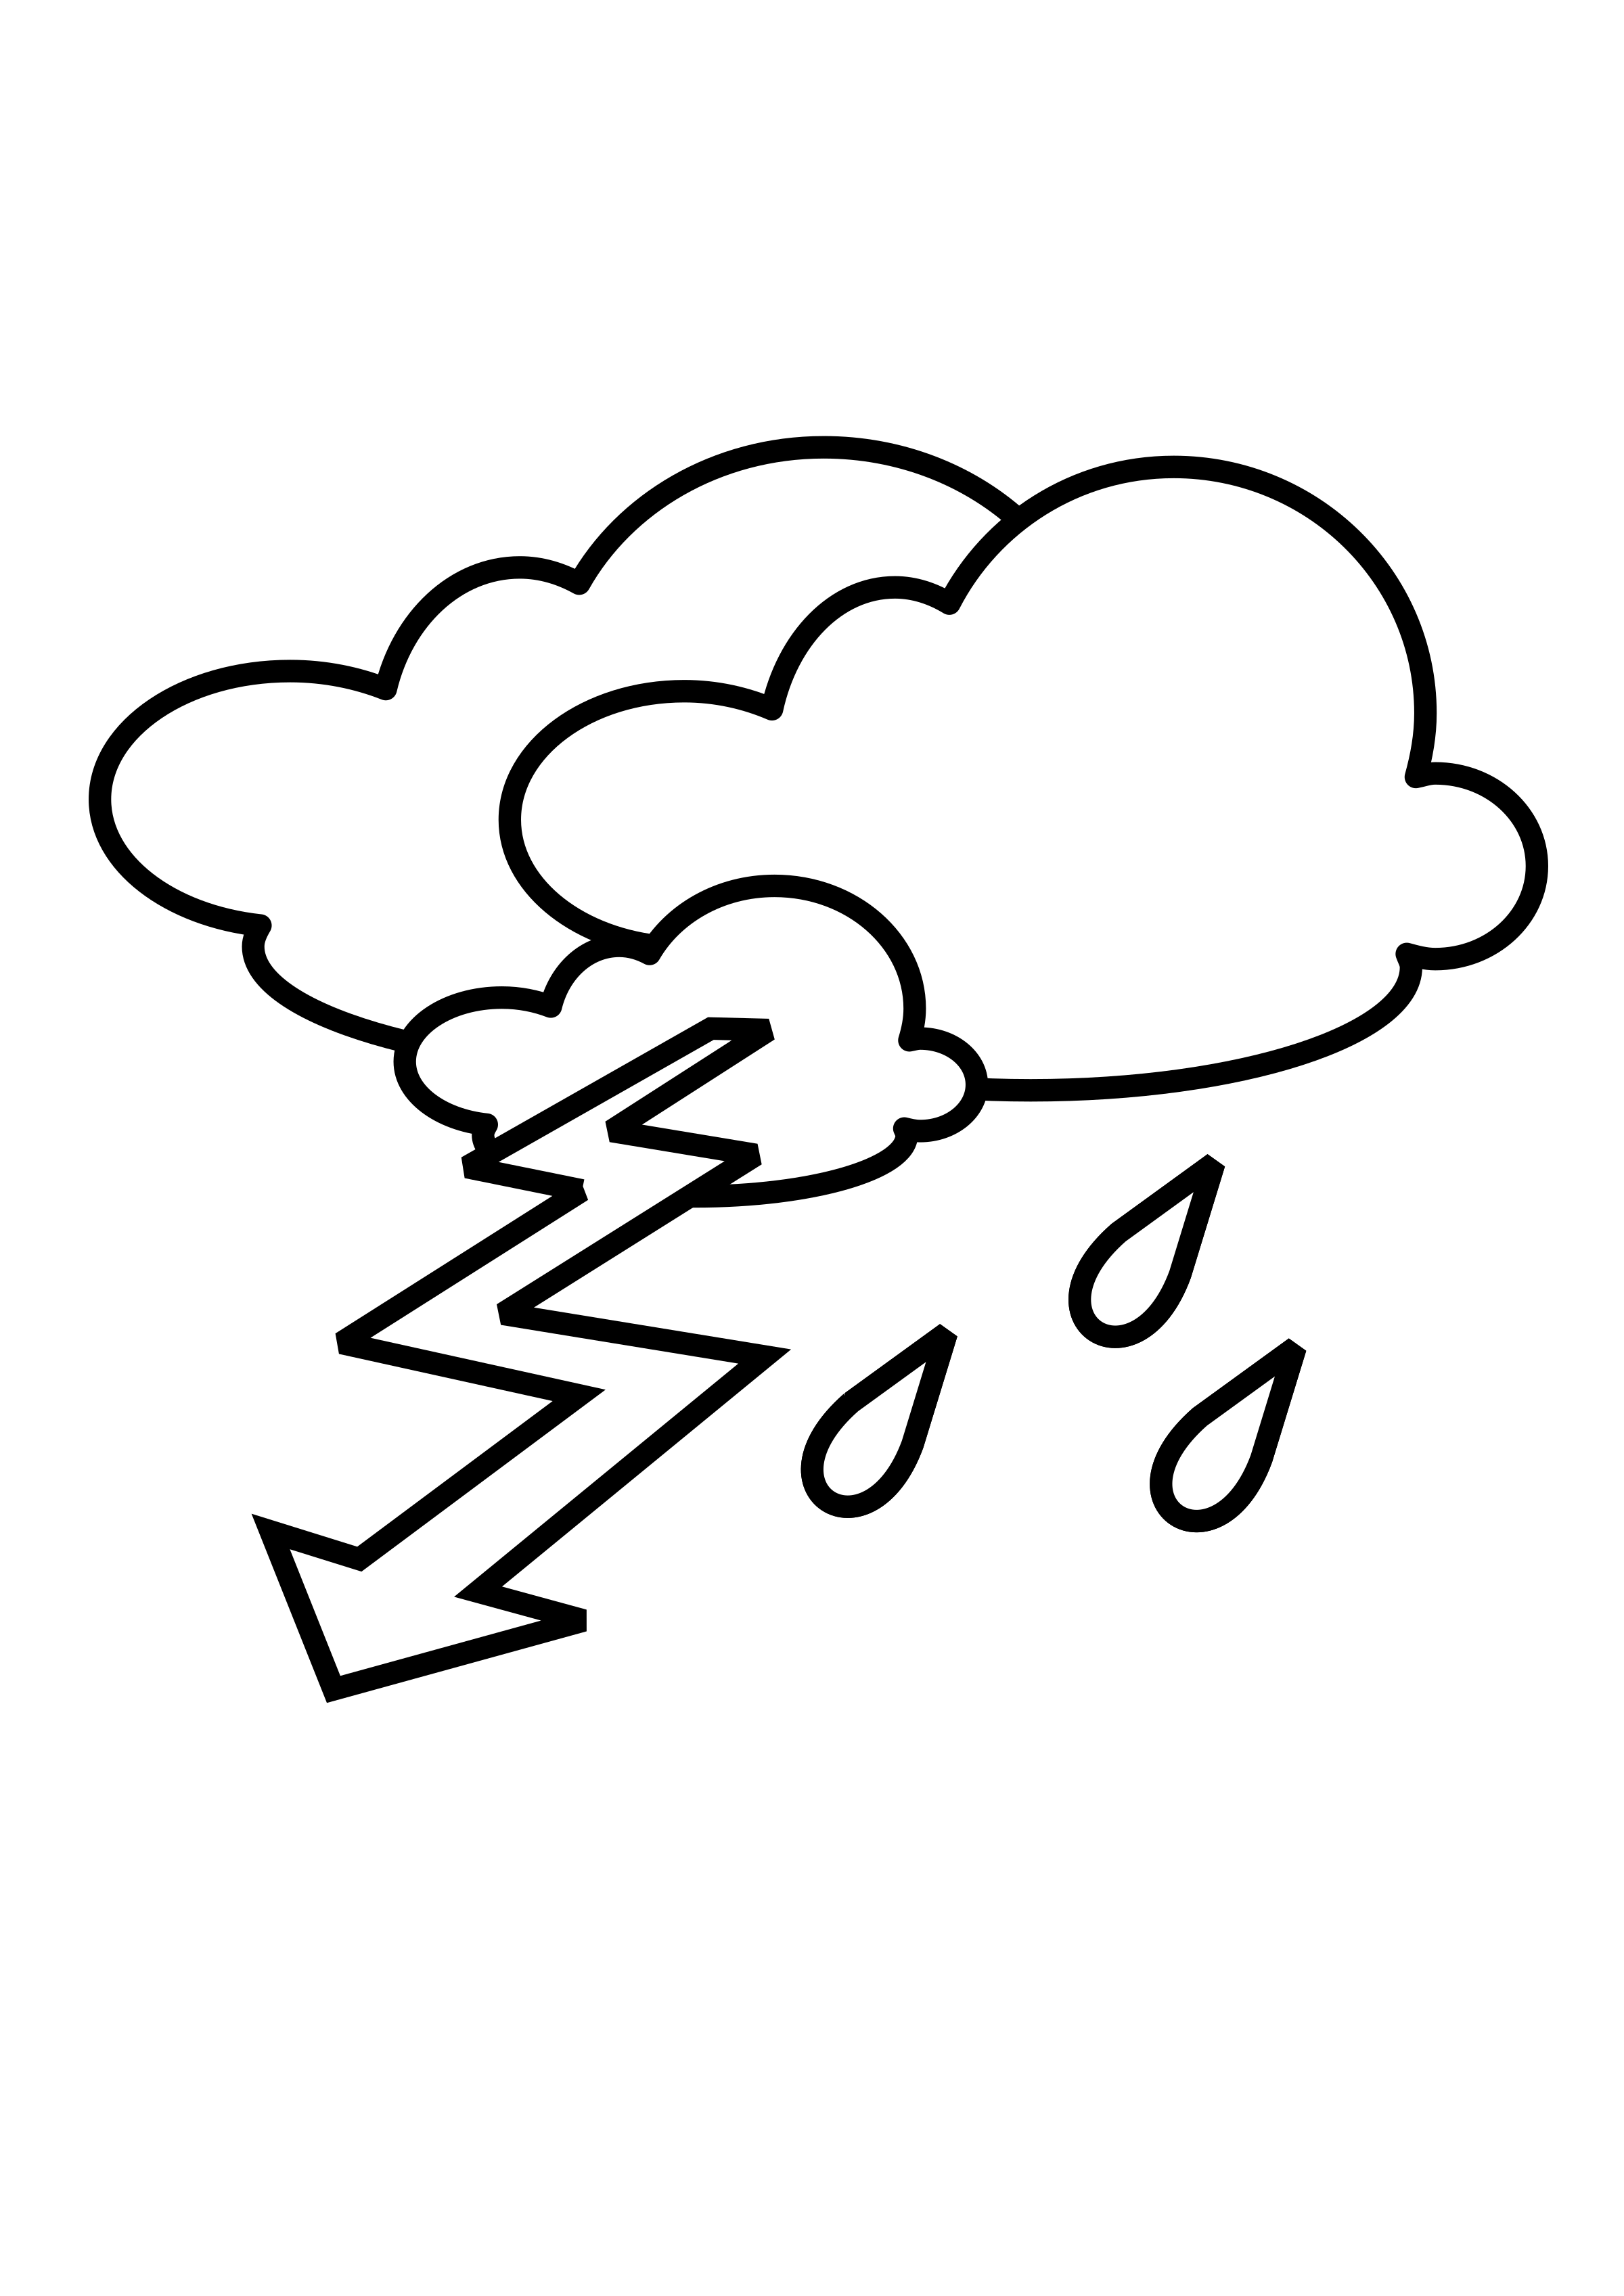 Thunderstorm clipart black and white. Stormy outline big image